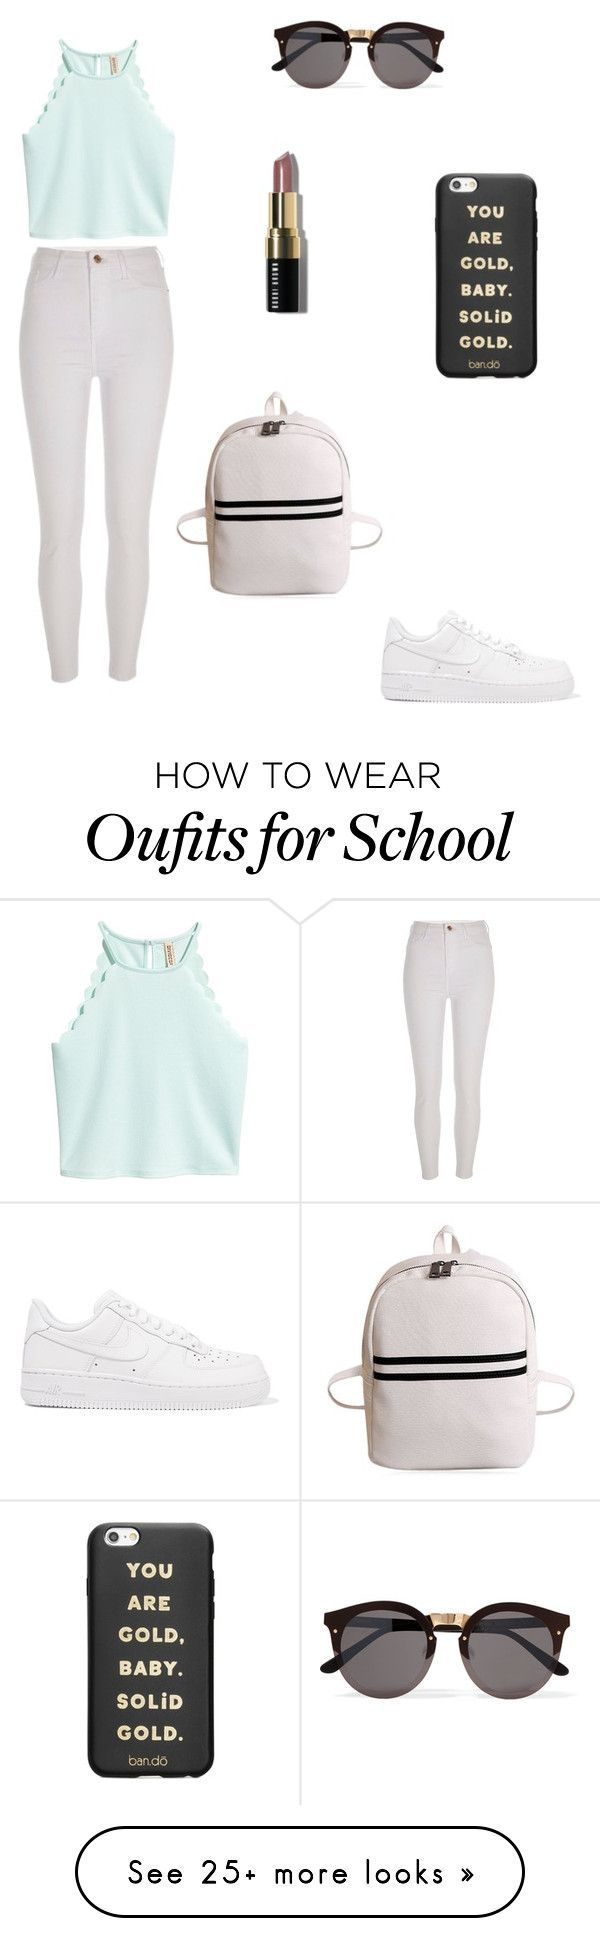 """School"" by lylou-waxin on Polyvore featuring River Island, NIKE, ban.do, Bobbi Brown Cosmetics and Illesteva"